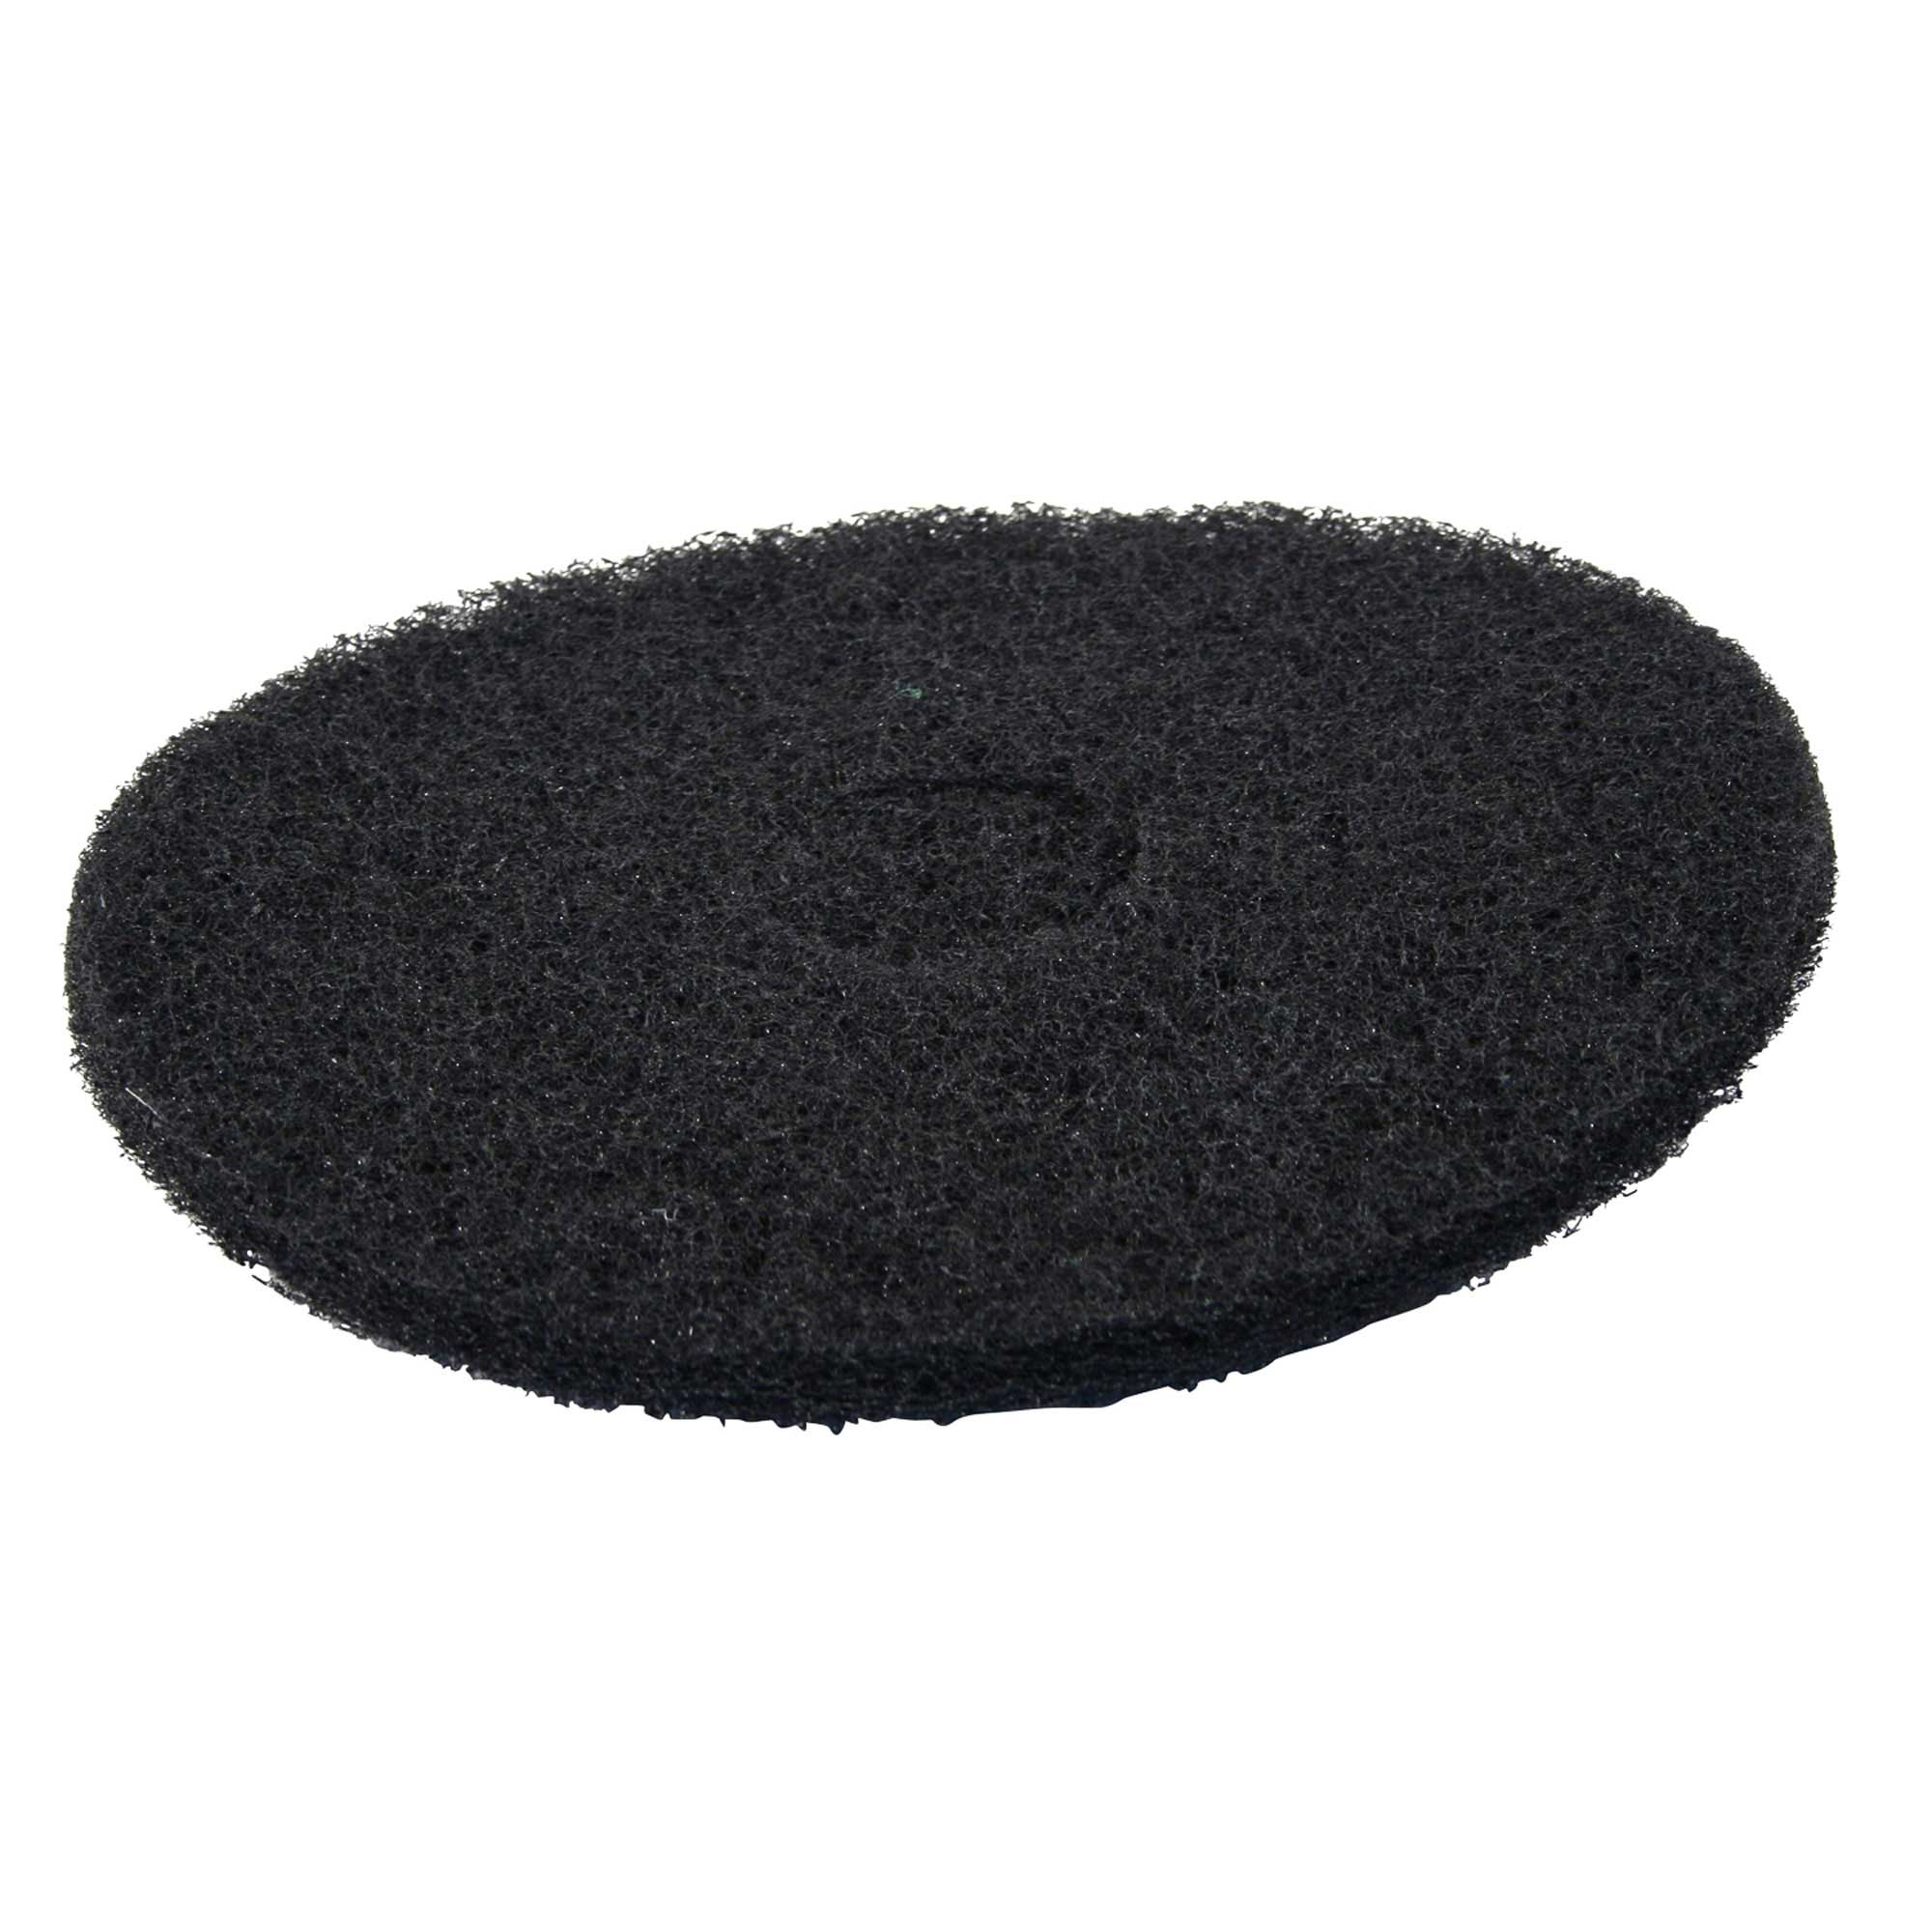 1430218 High Performance Pad dikte 25 mm tot 350 toeren 16 inch